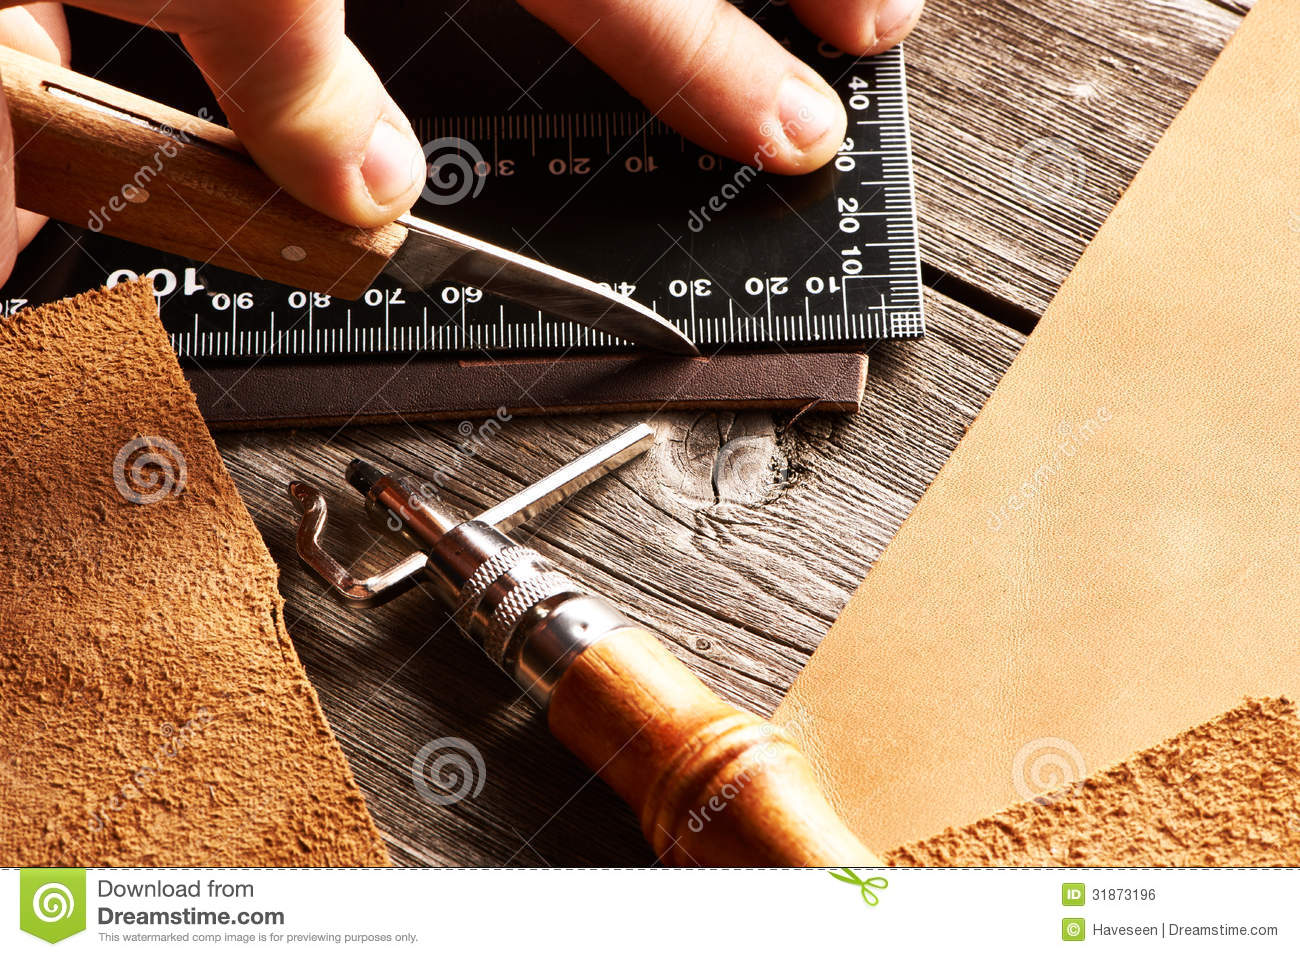 Leather Crafting Tools Royalty Free Stock Image - Image: 31873196